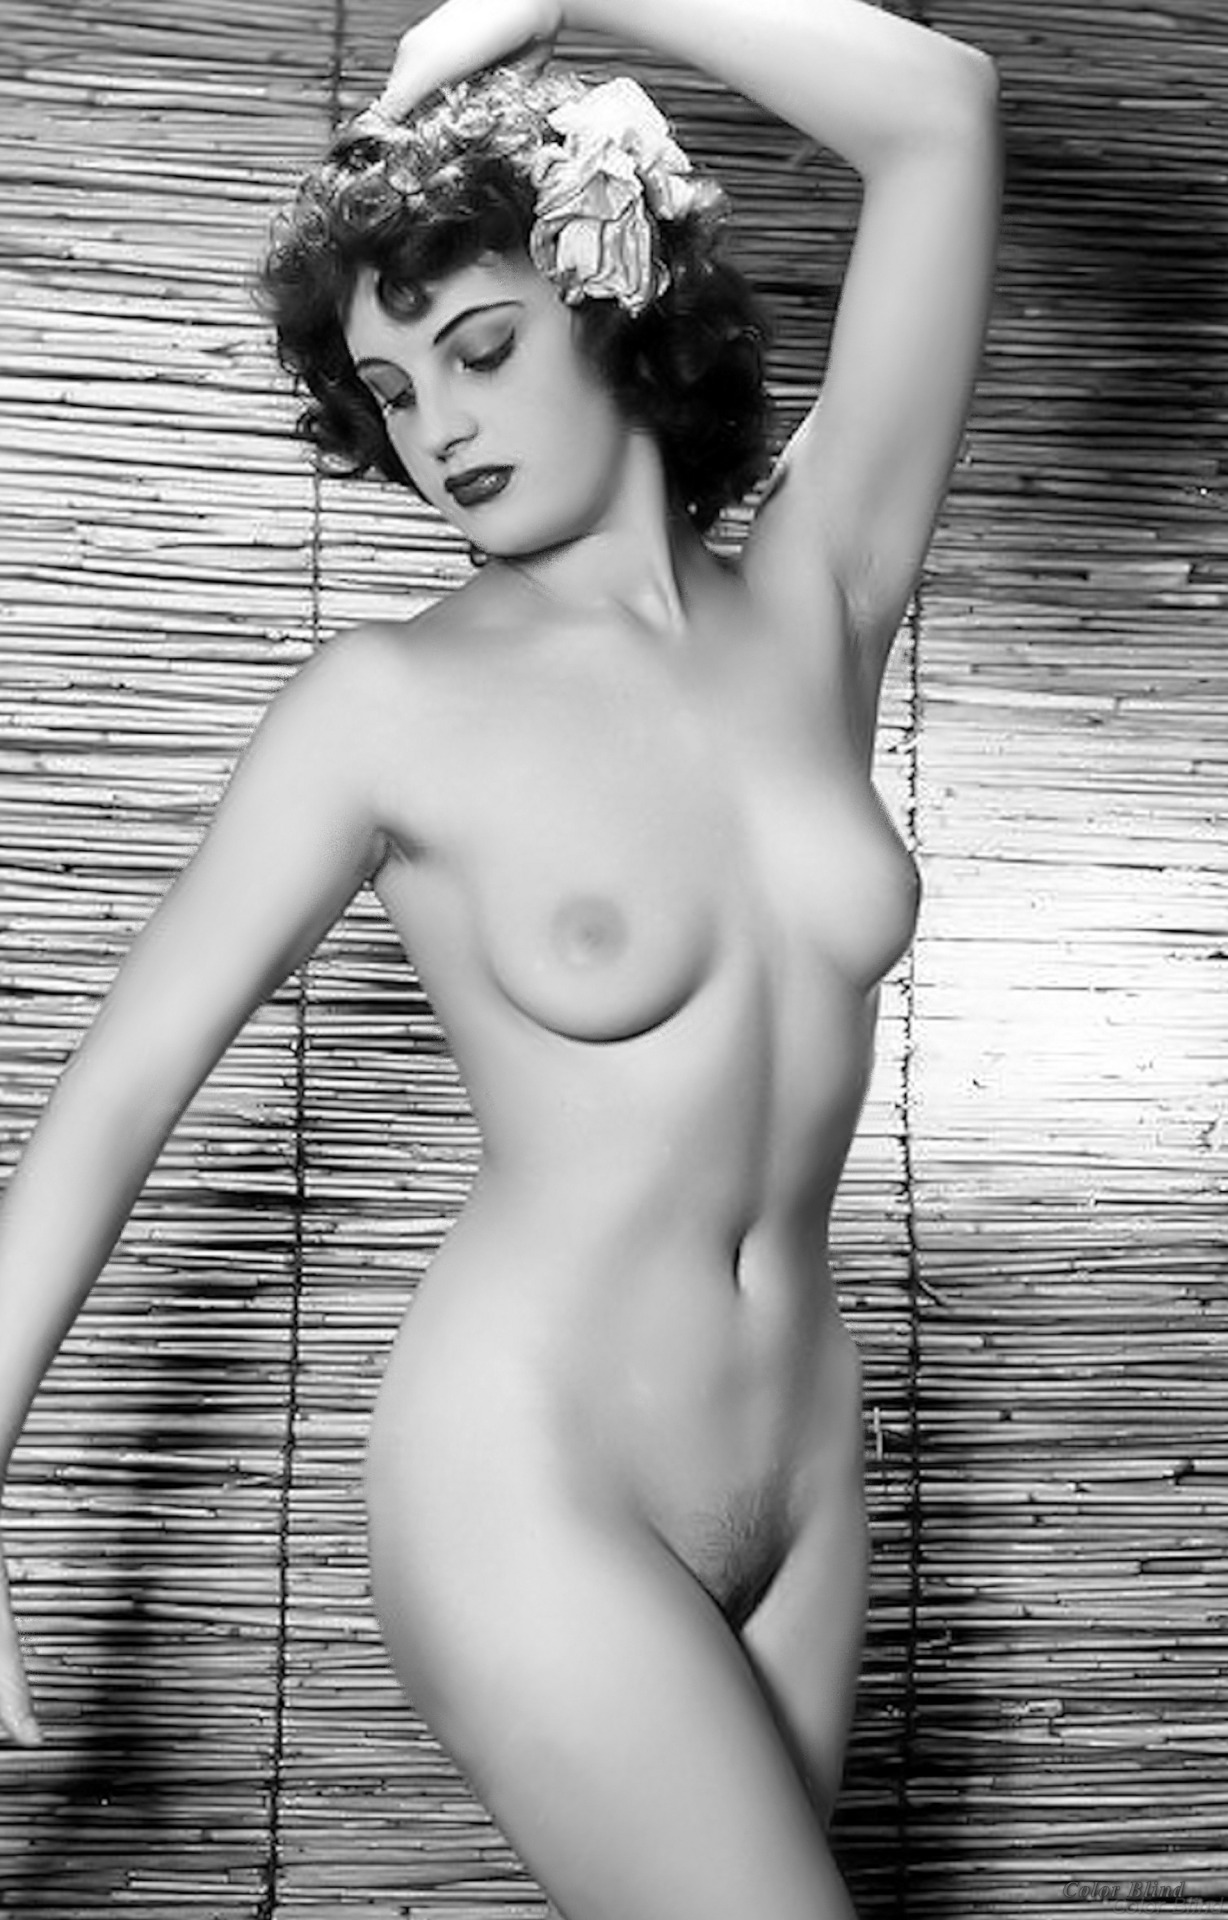 Images Showing For Free -Vintage Nude Pinups-8333